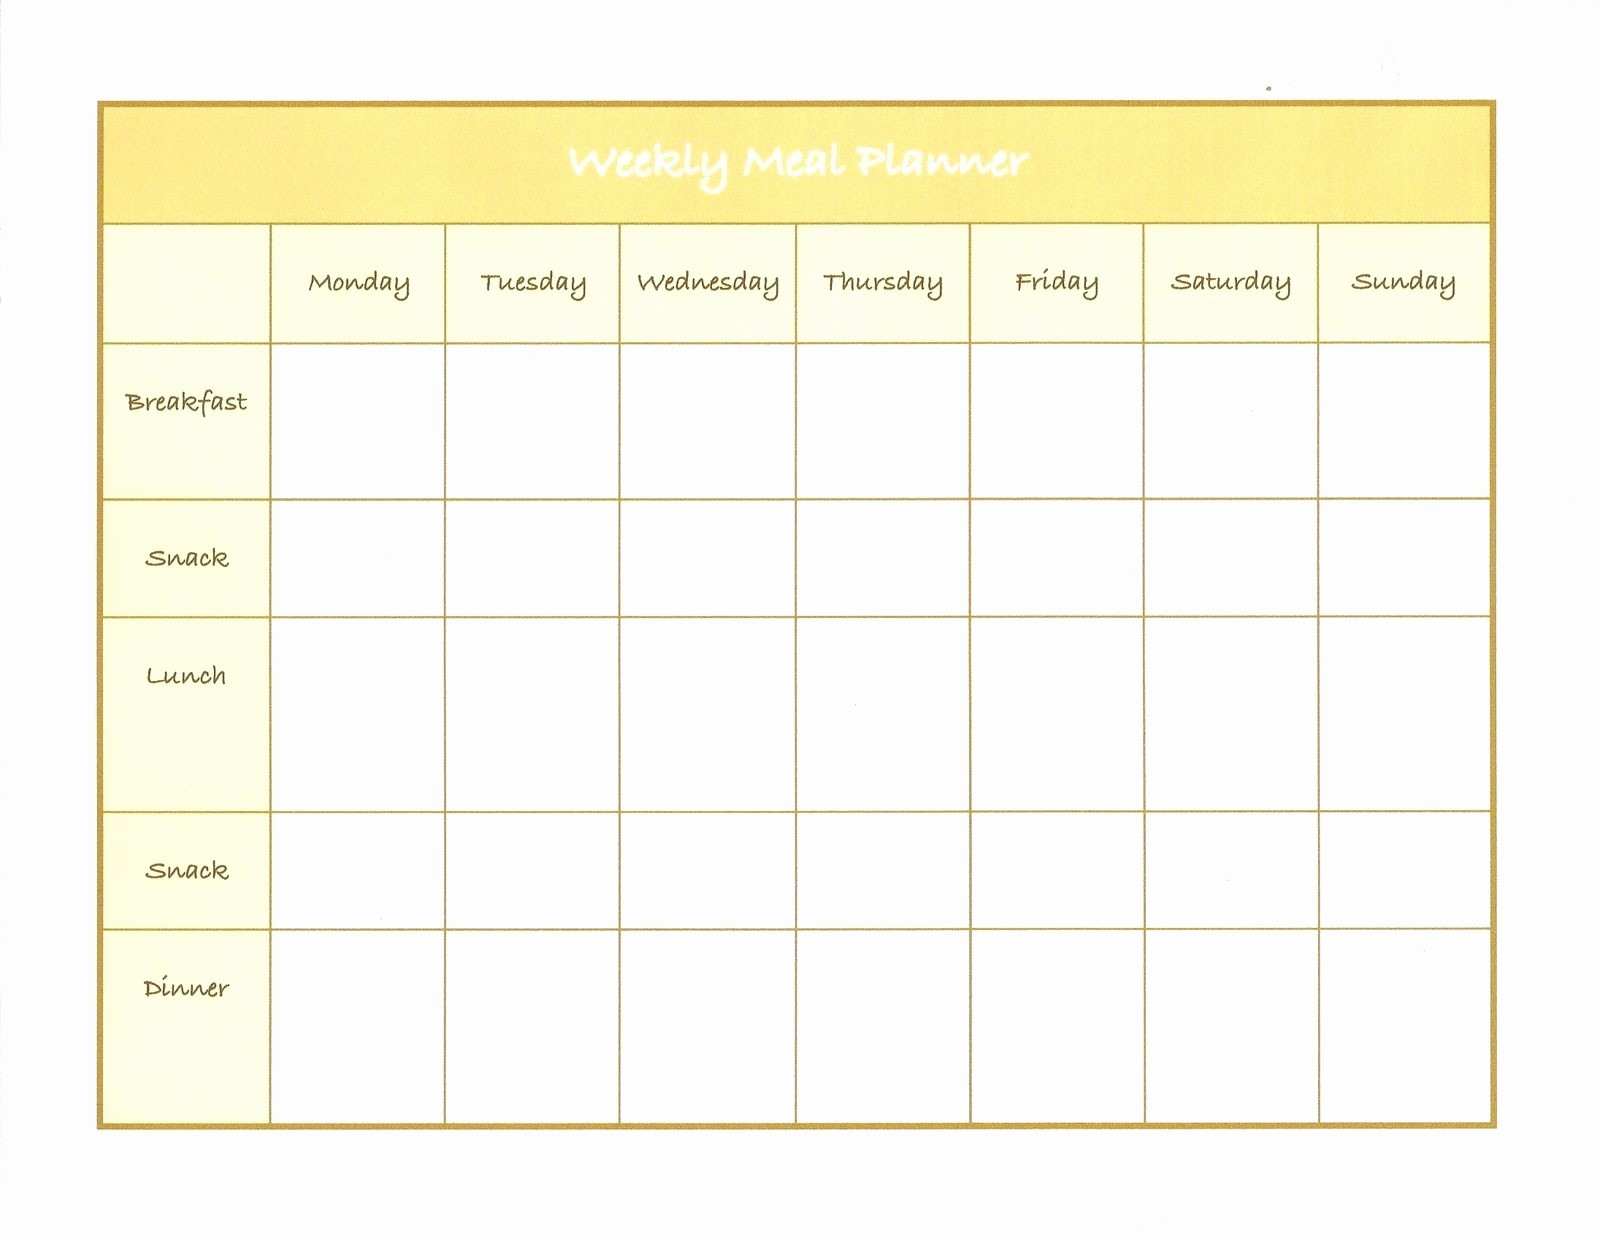 Free Meal Planner Template Download Beautiful Meal Planner Template